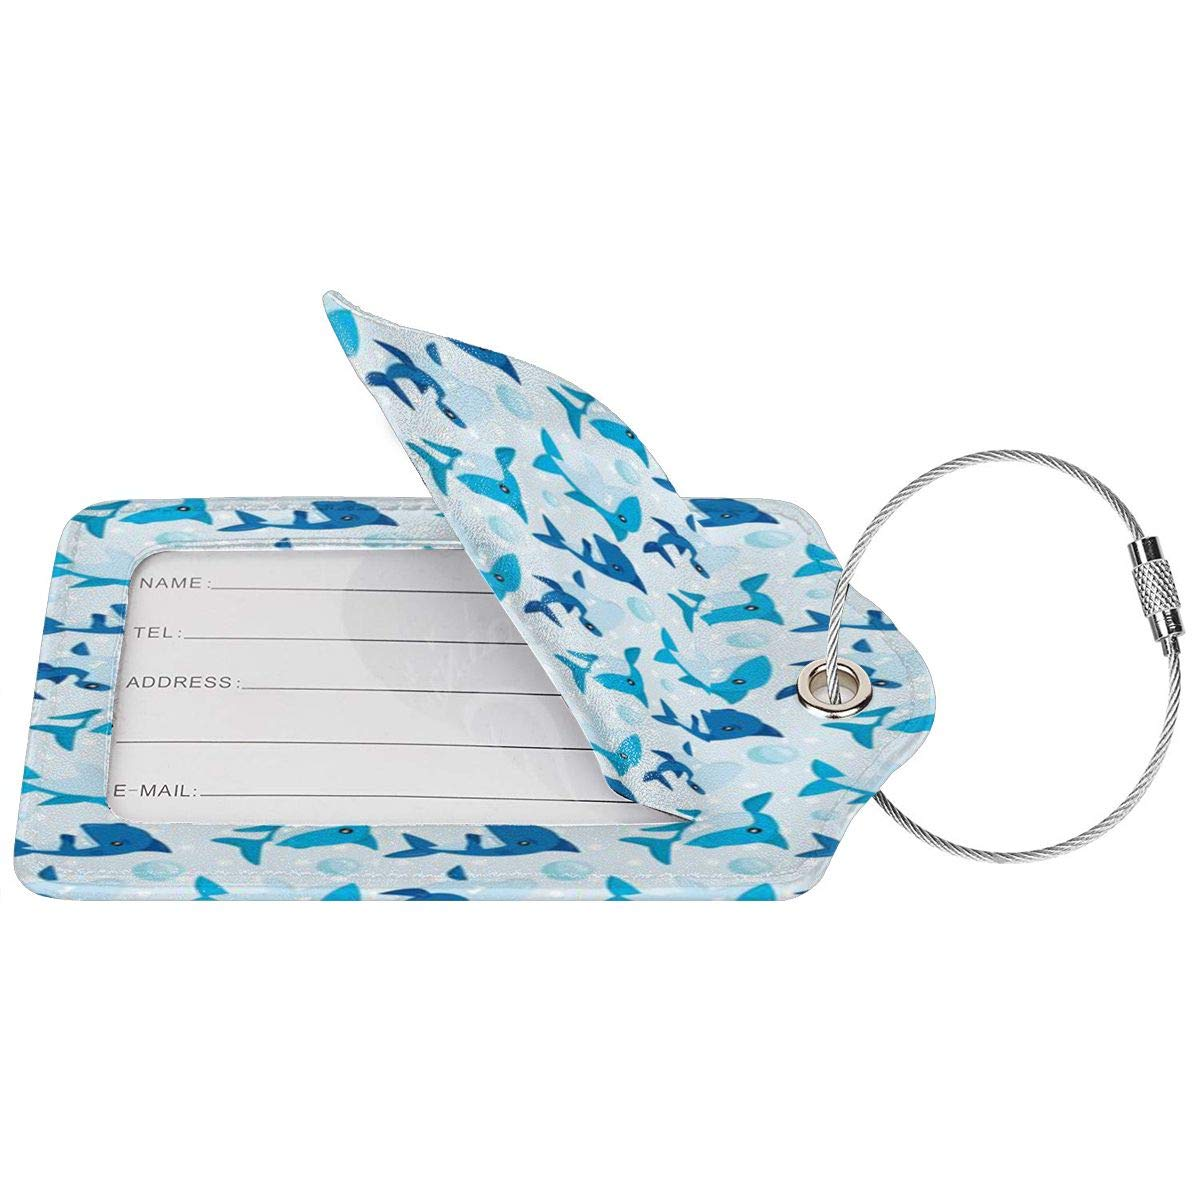 Hawaiian Print Luggage Tags With Full Back Privacy Cover W//Steel Loops